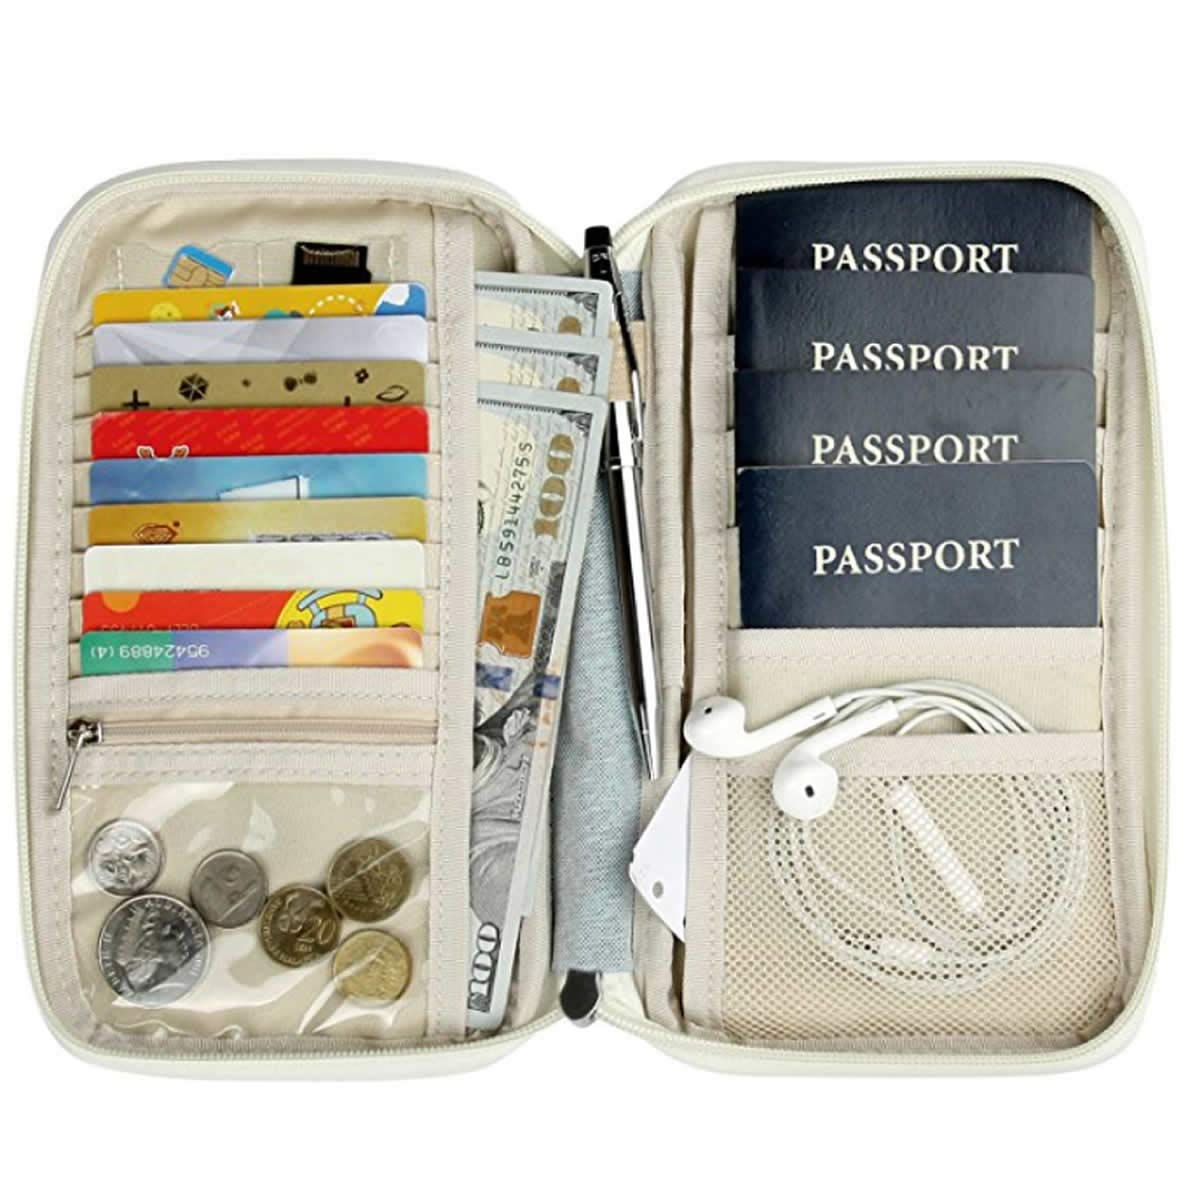 Family Passport Holder w/RFID Blocking - Travel Wallet - Cruise Essentials - Cruise Ship Accessories (4 Pocket)